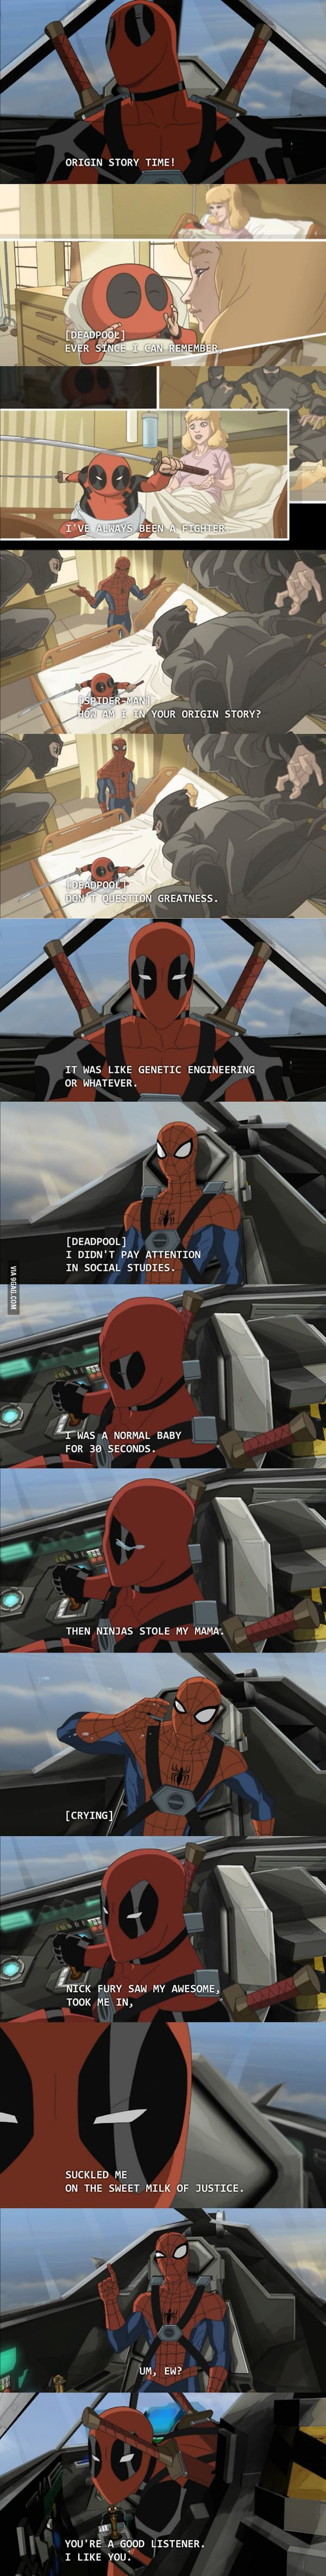 Origin Story Time! Deadpool! ultimate Spider-Man- one of the best superhero shows on tv! Also tune in to reruns of young justice ( because that was the BEST superhero show on tv)